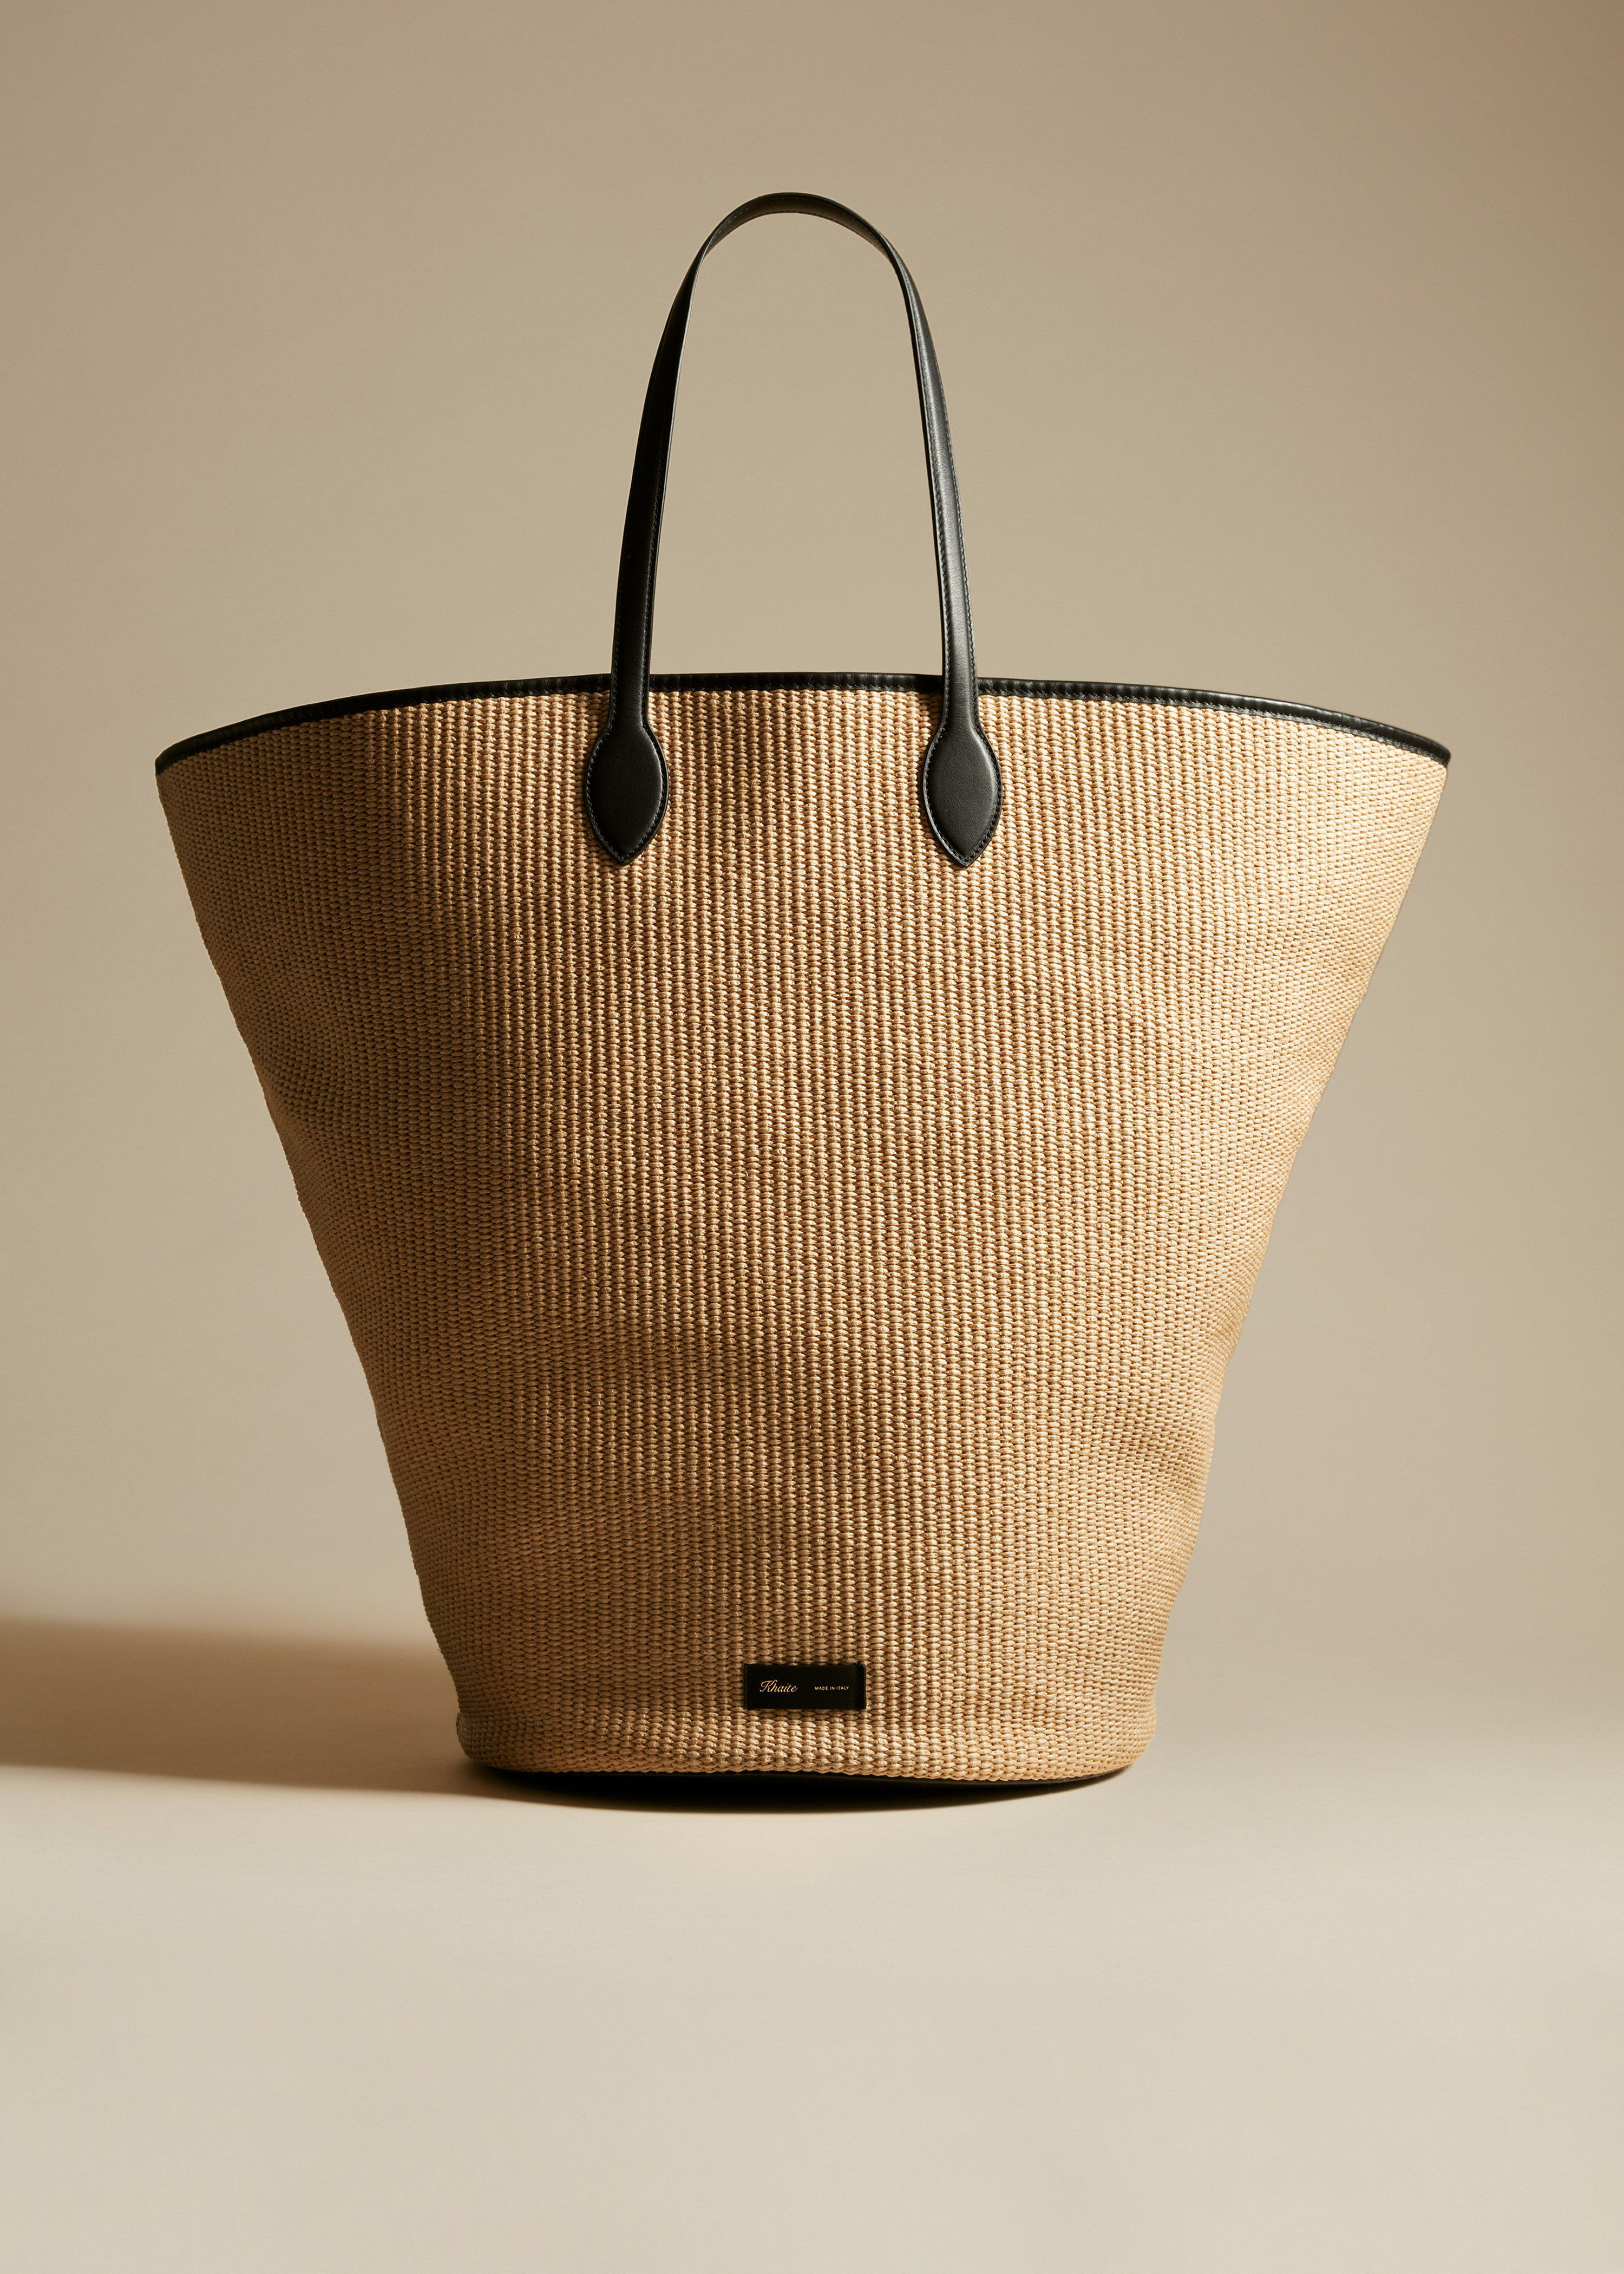 The Large Osa Tote in Natural Raffia